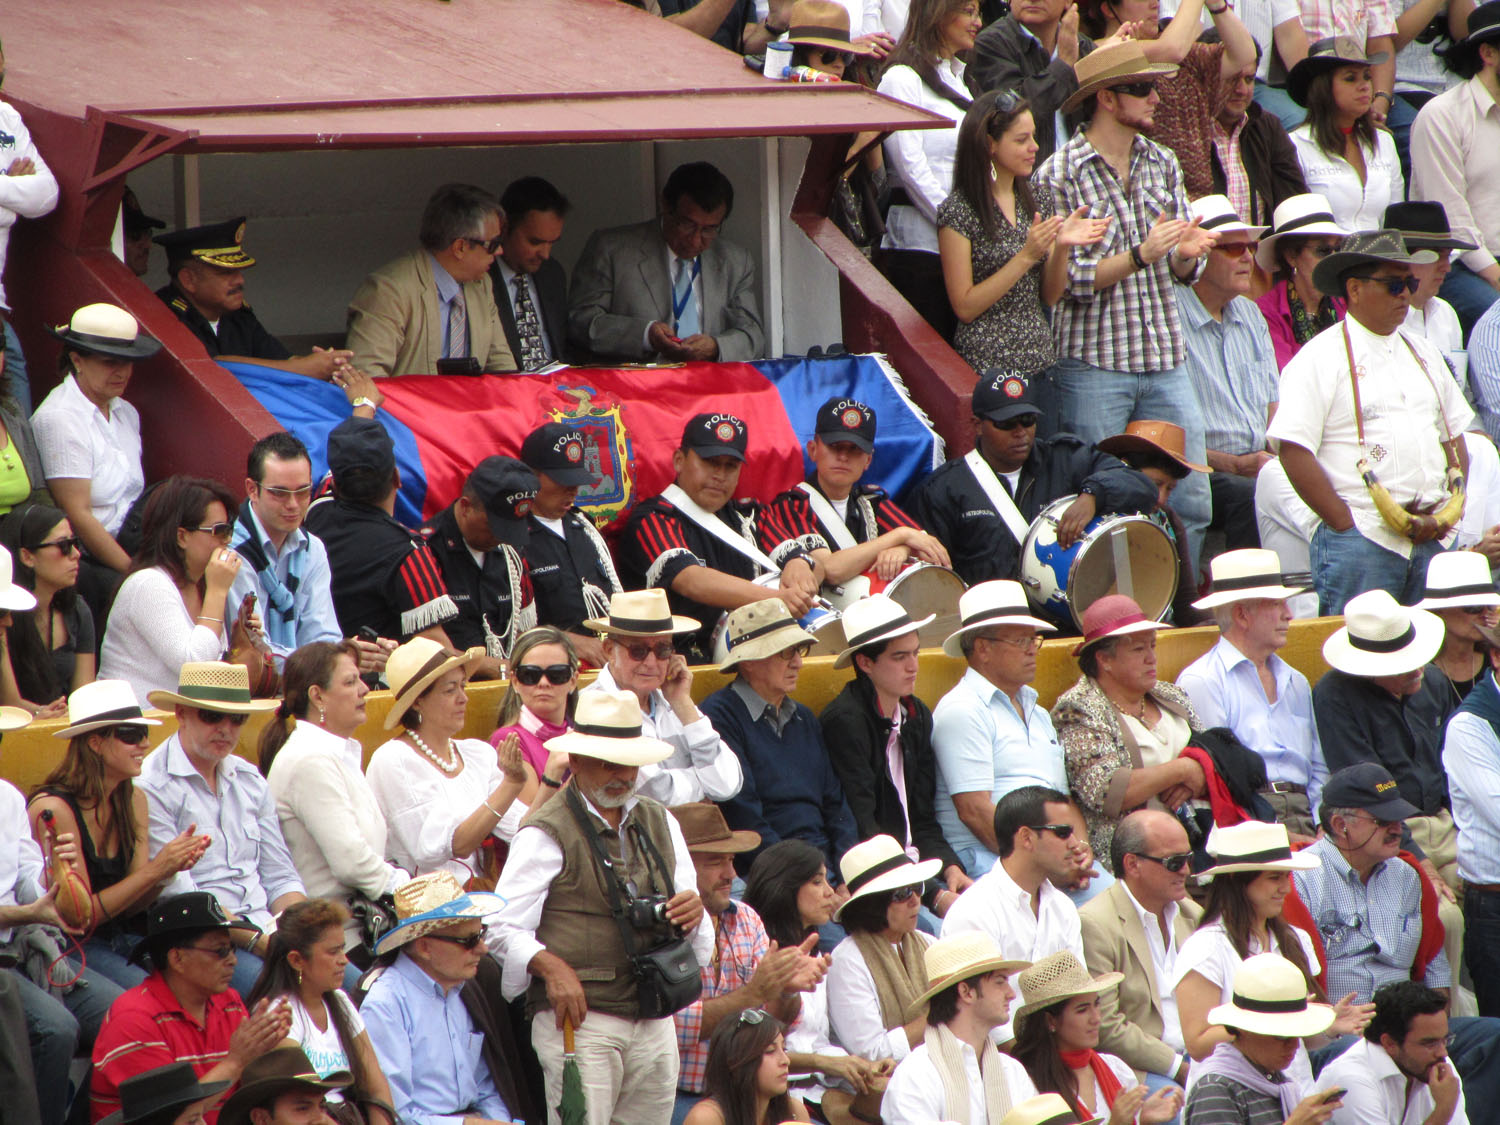 Ecuador-Quito-Bullfight-VIPS